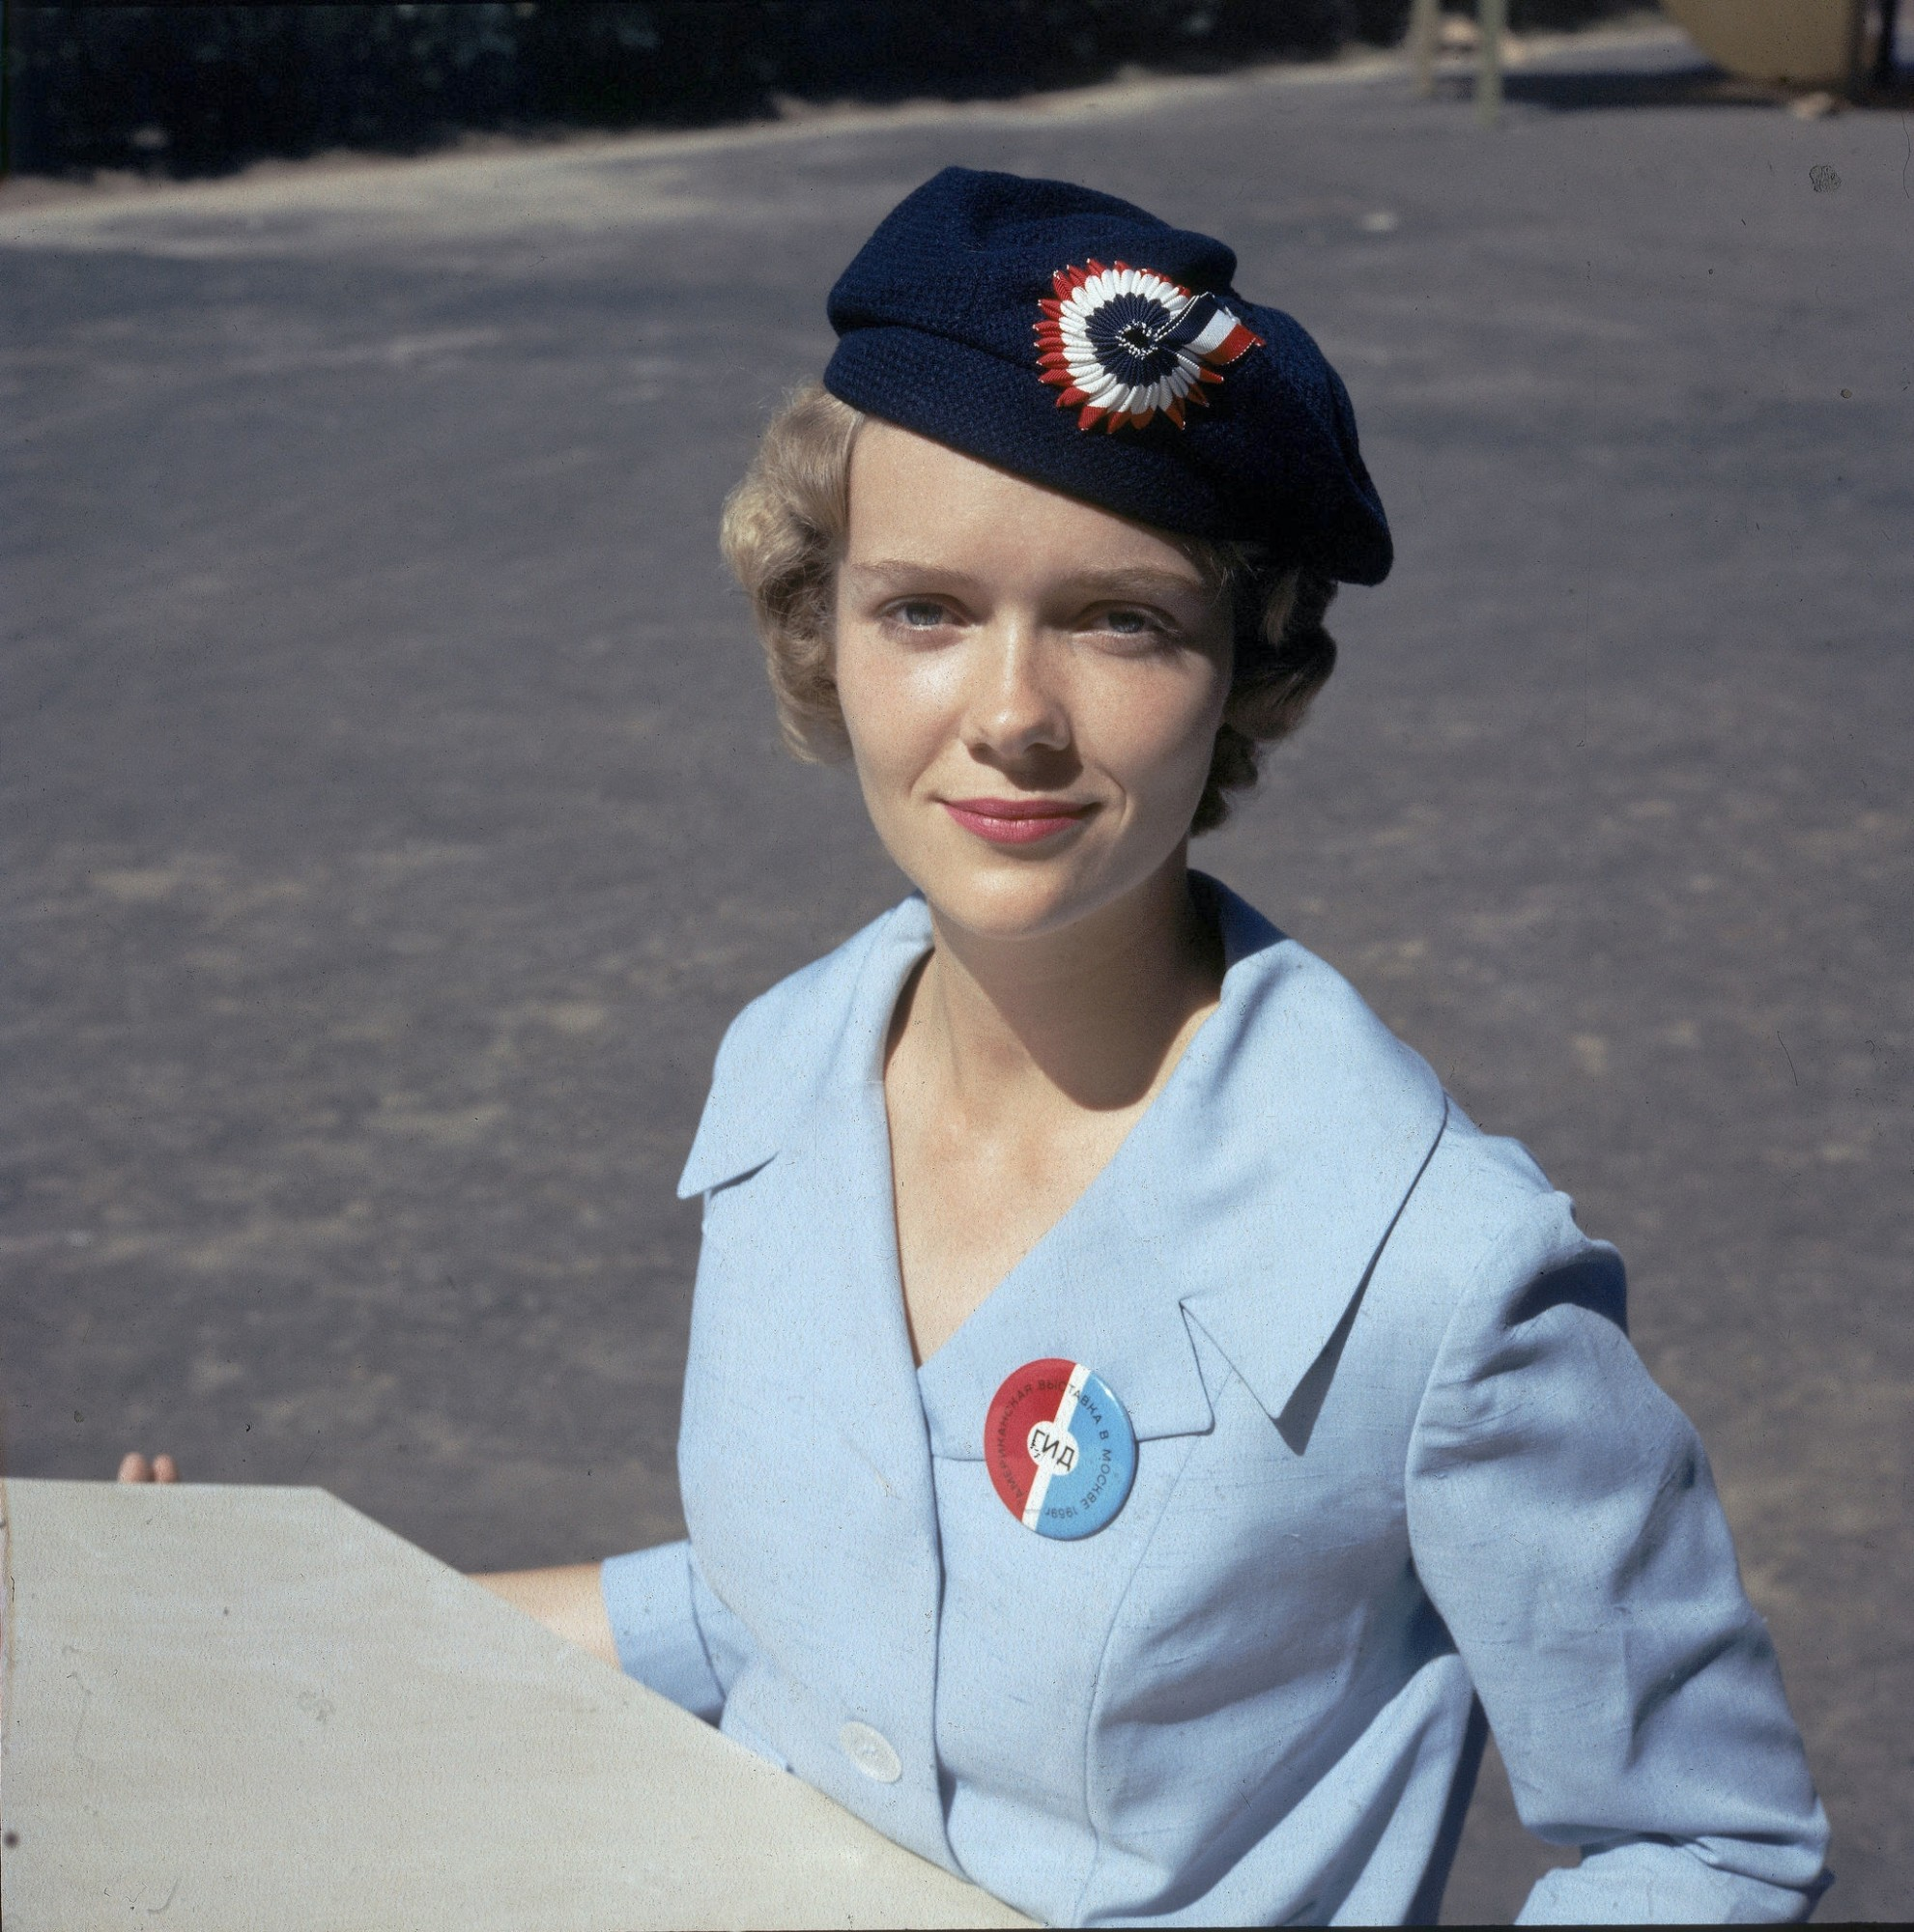 1959 Russian-speaking American Tania Akhonin, in uniform as a guide at the US Trade Fair, Sokolniki Park, Moscow